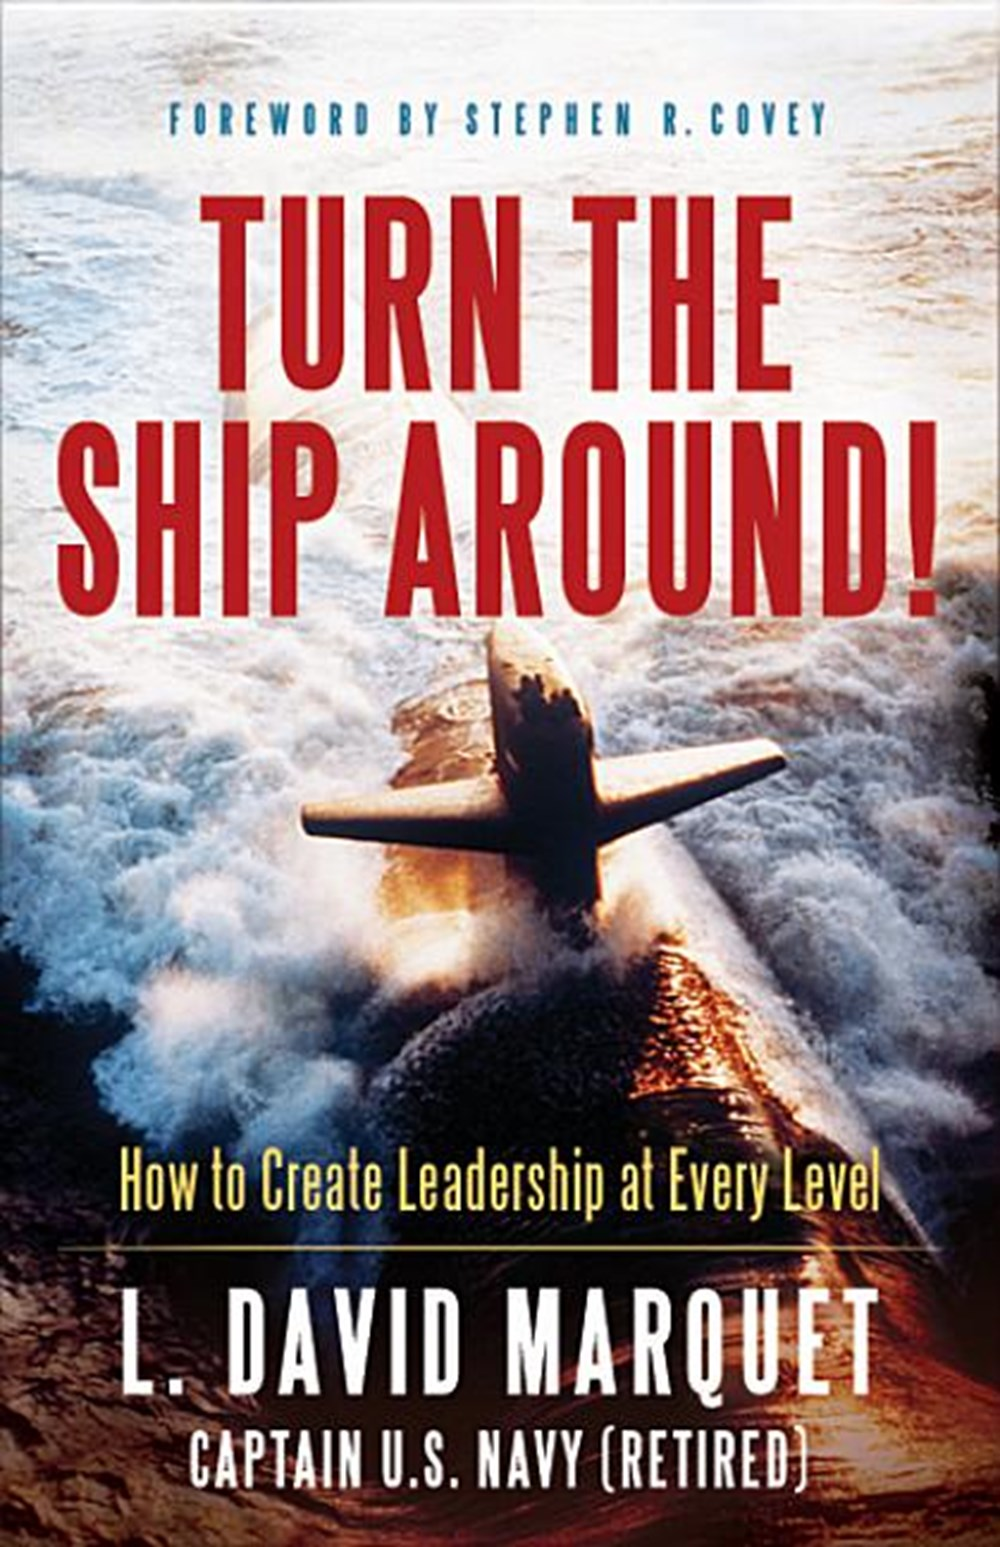 Turn the Ship Around! A True Story of Turning Followers Into Leaders